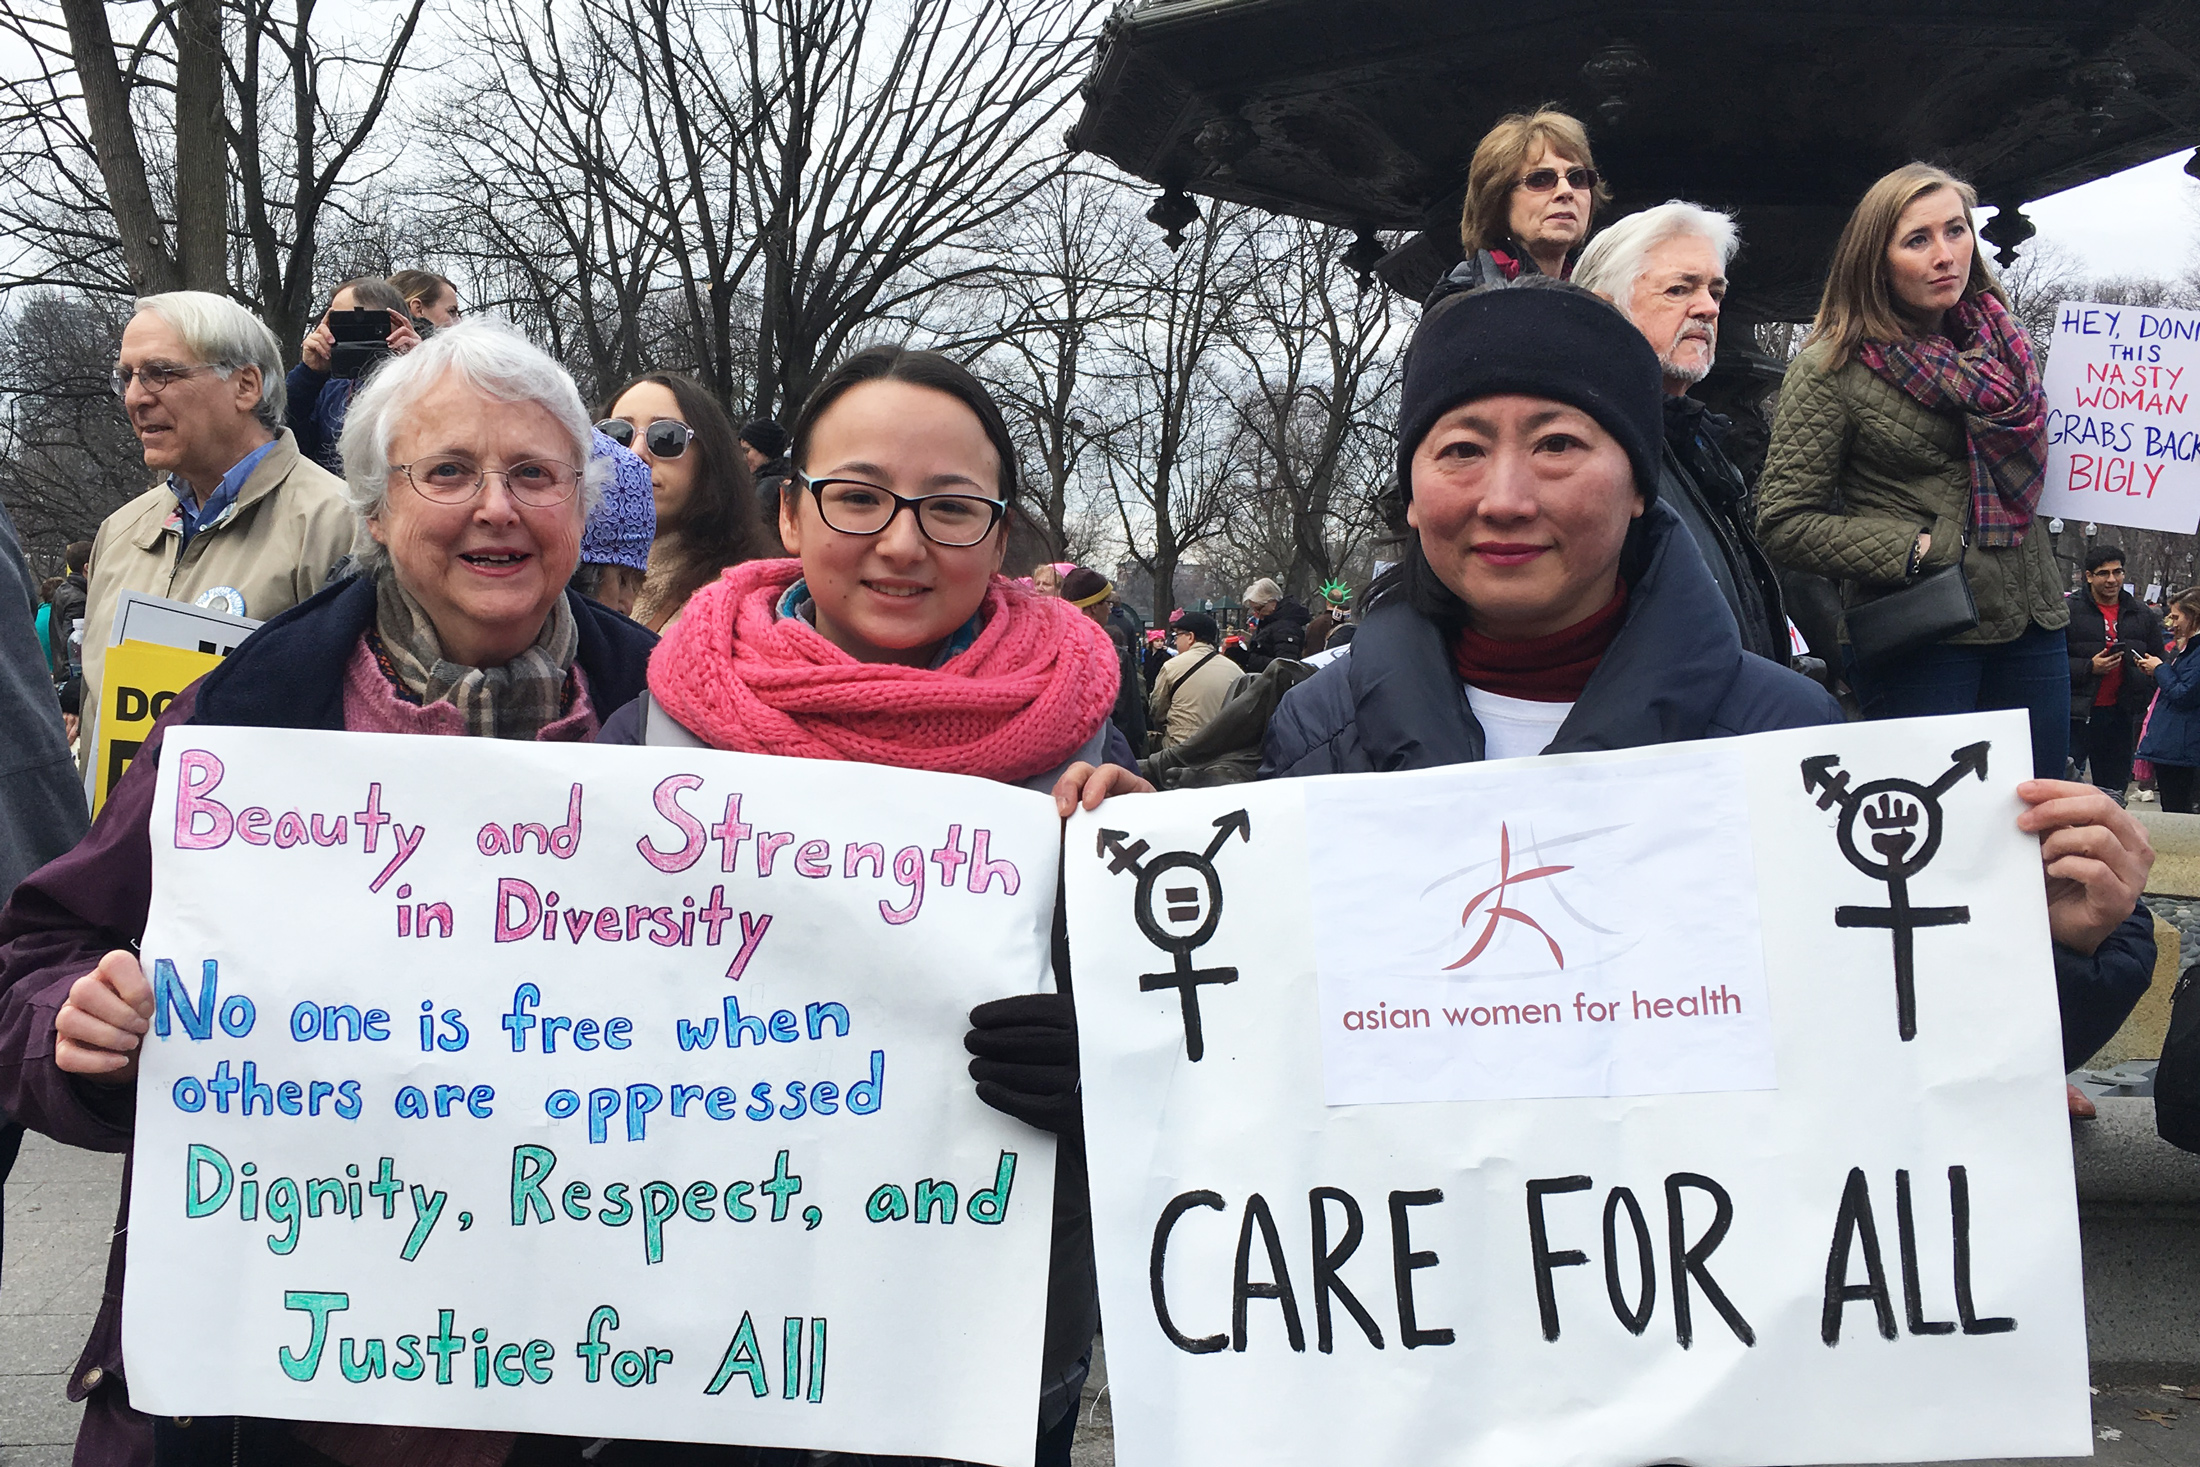 (Left to right) Claris Bergman, Samantha Bergman and Chien-Chi Huang, all part of the same family, explain why they march in Boston on Jan. 21, 2017. (Photo by Kelly Kasulis/GroundTruth)